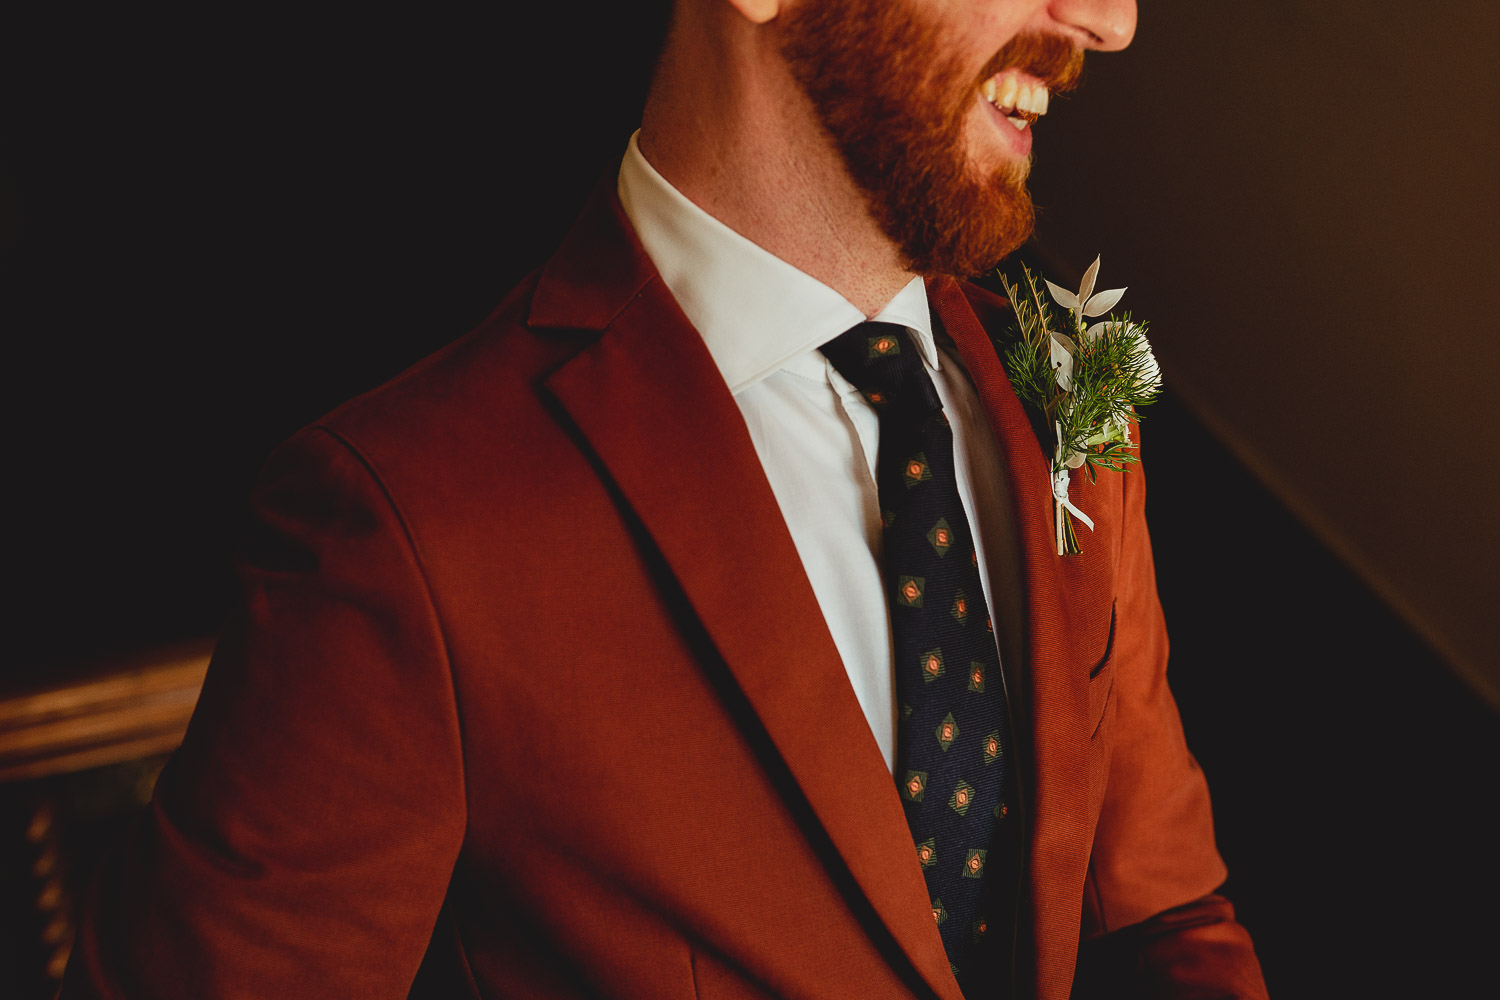 september voewood wedding rust suit by georgia rachael